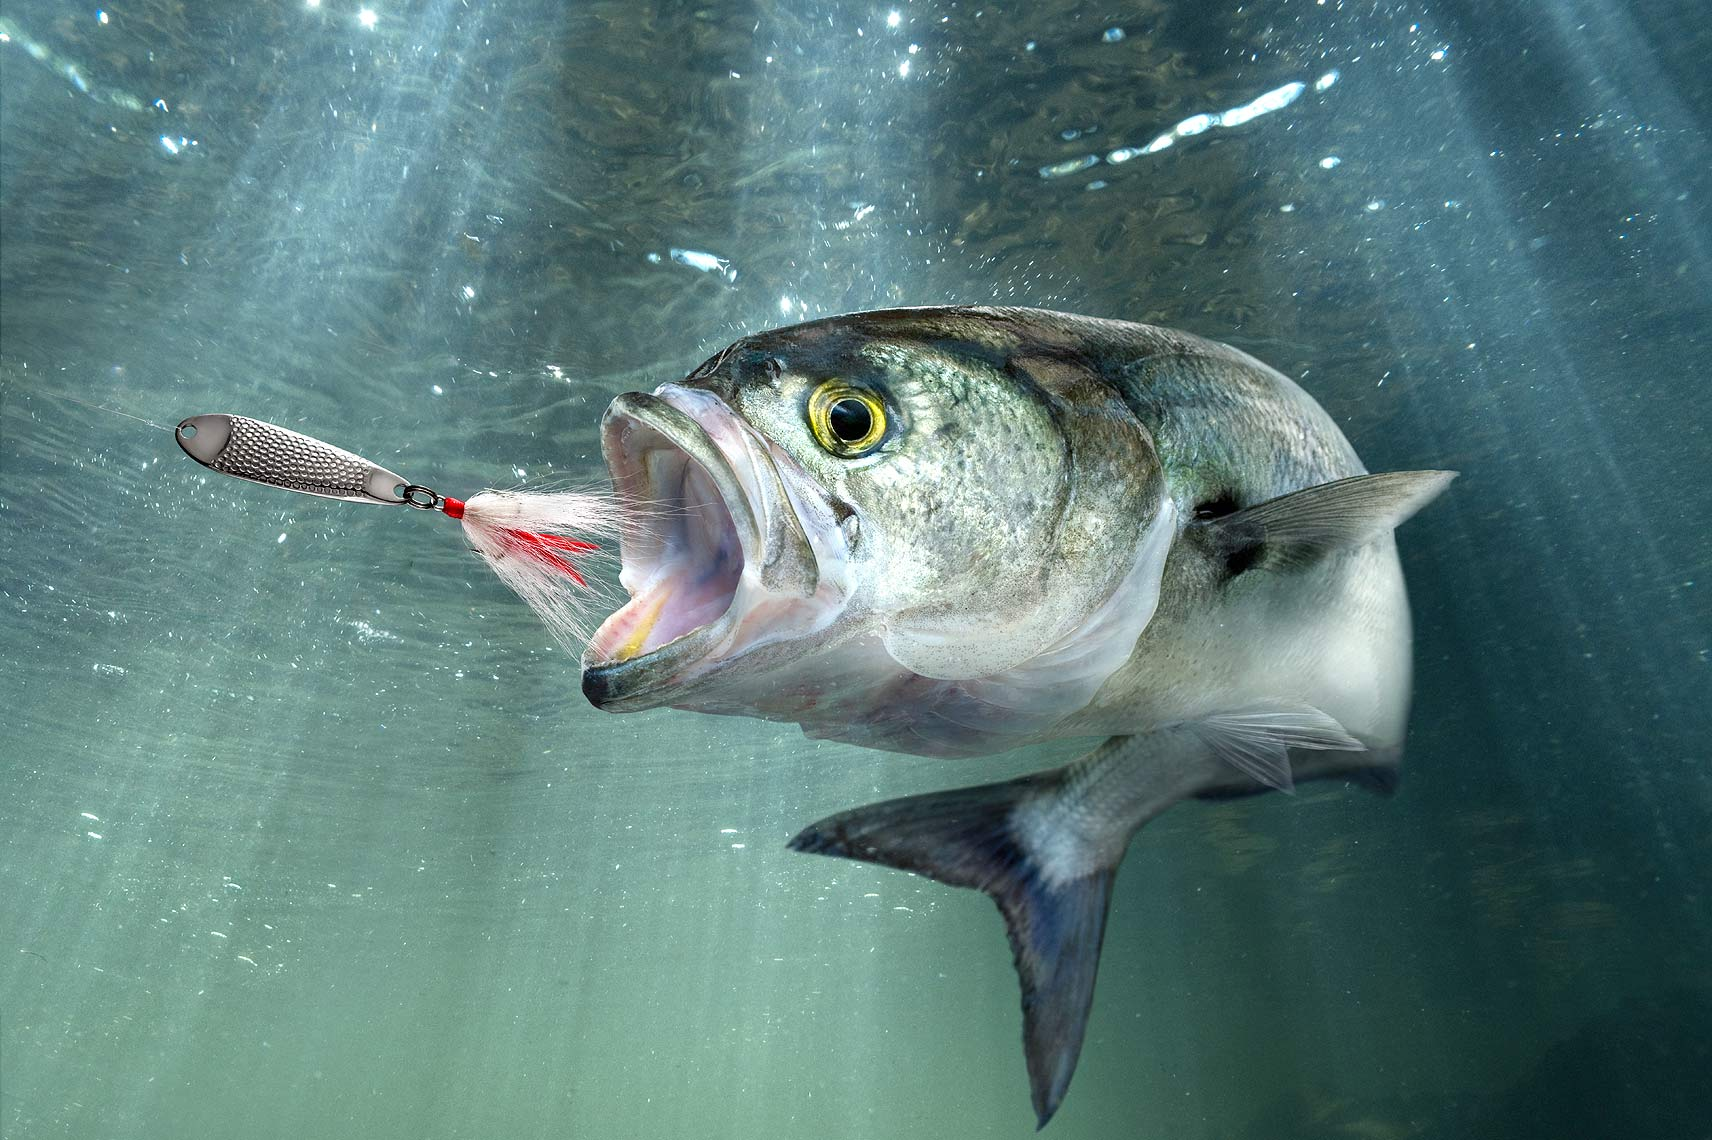 Bluefish chasing metal lure by John Kuczala